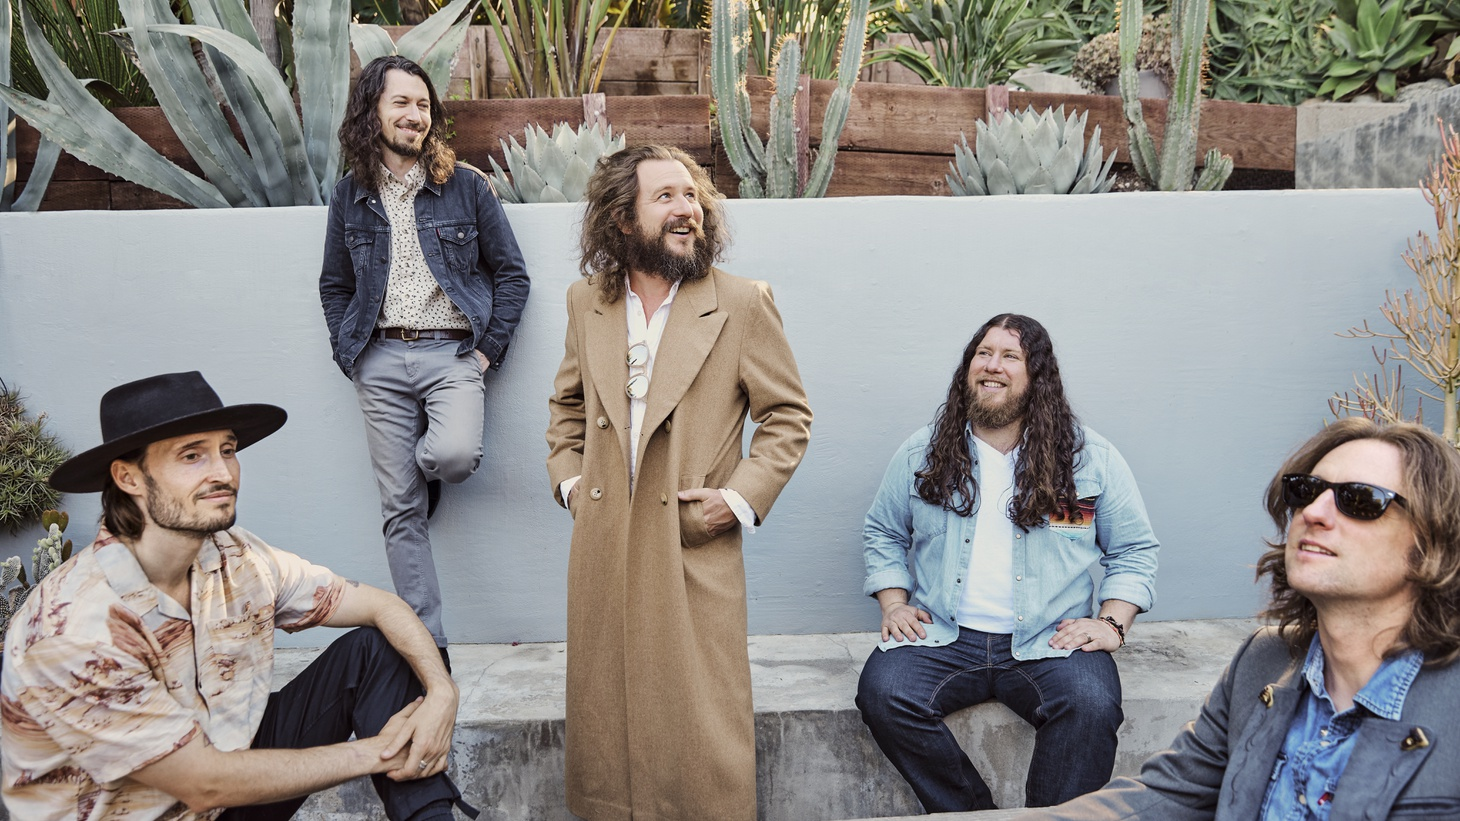 Looking for love? Well, My Morning Jacket is about to issue their ninth full length album later this month.